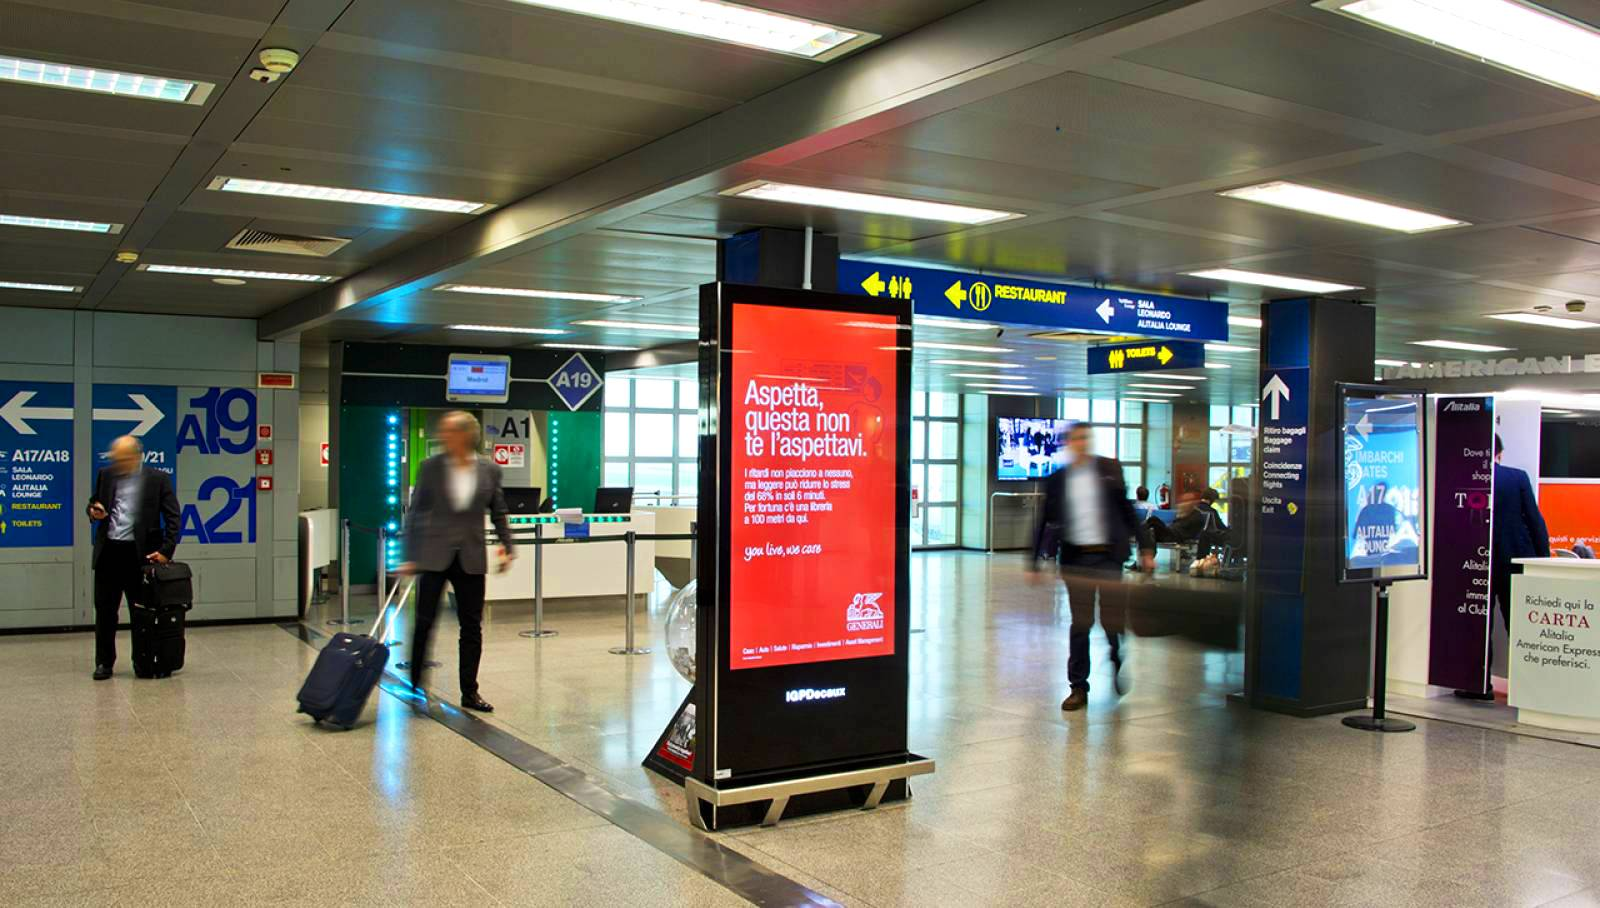 Digital Out Of Home advertising IGPDecaux digital network for Generali